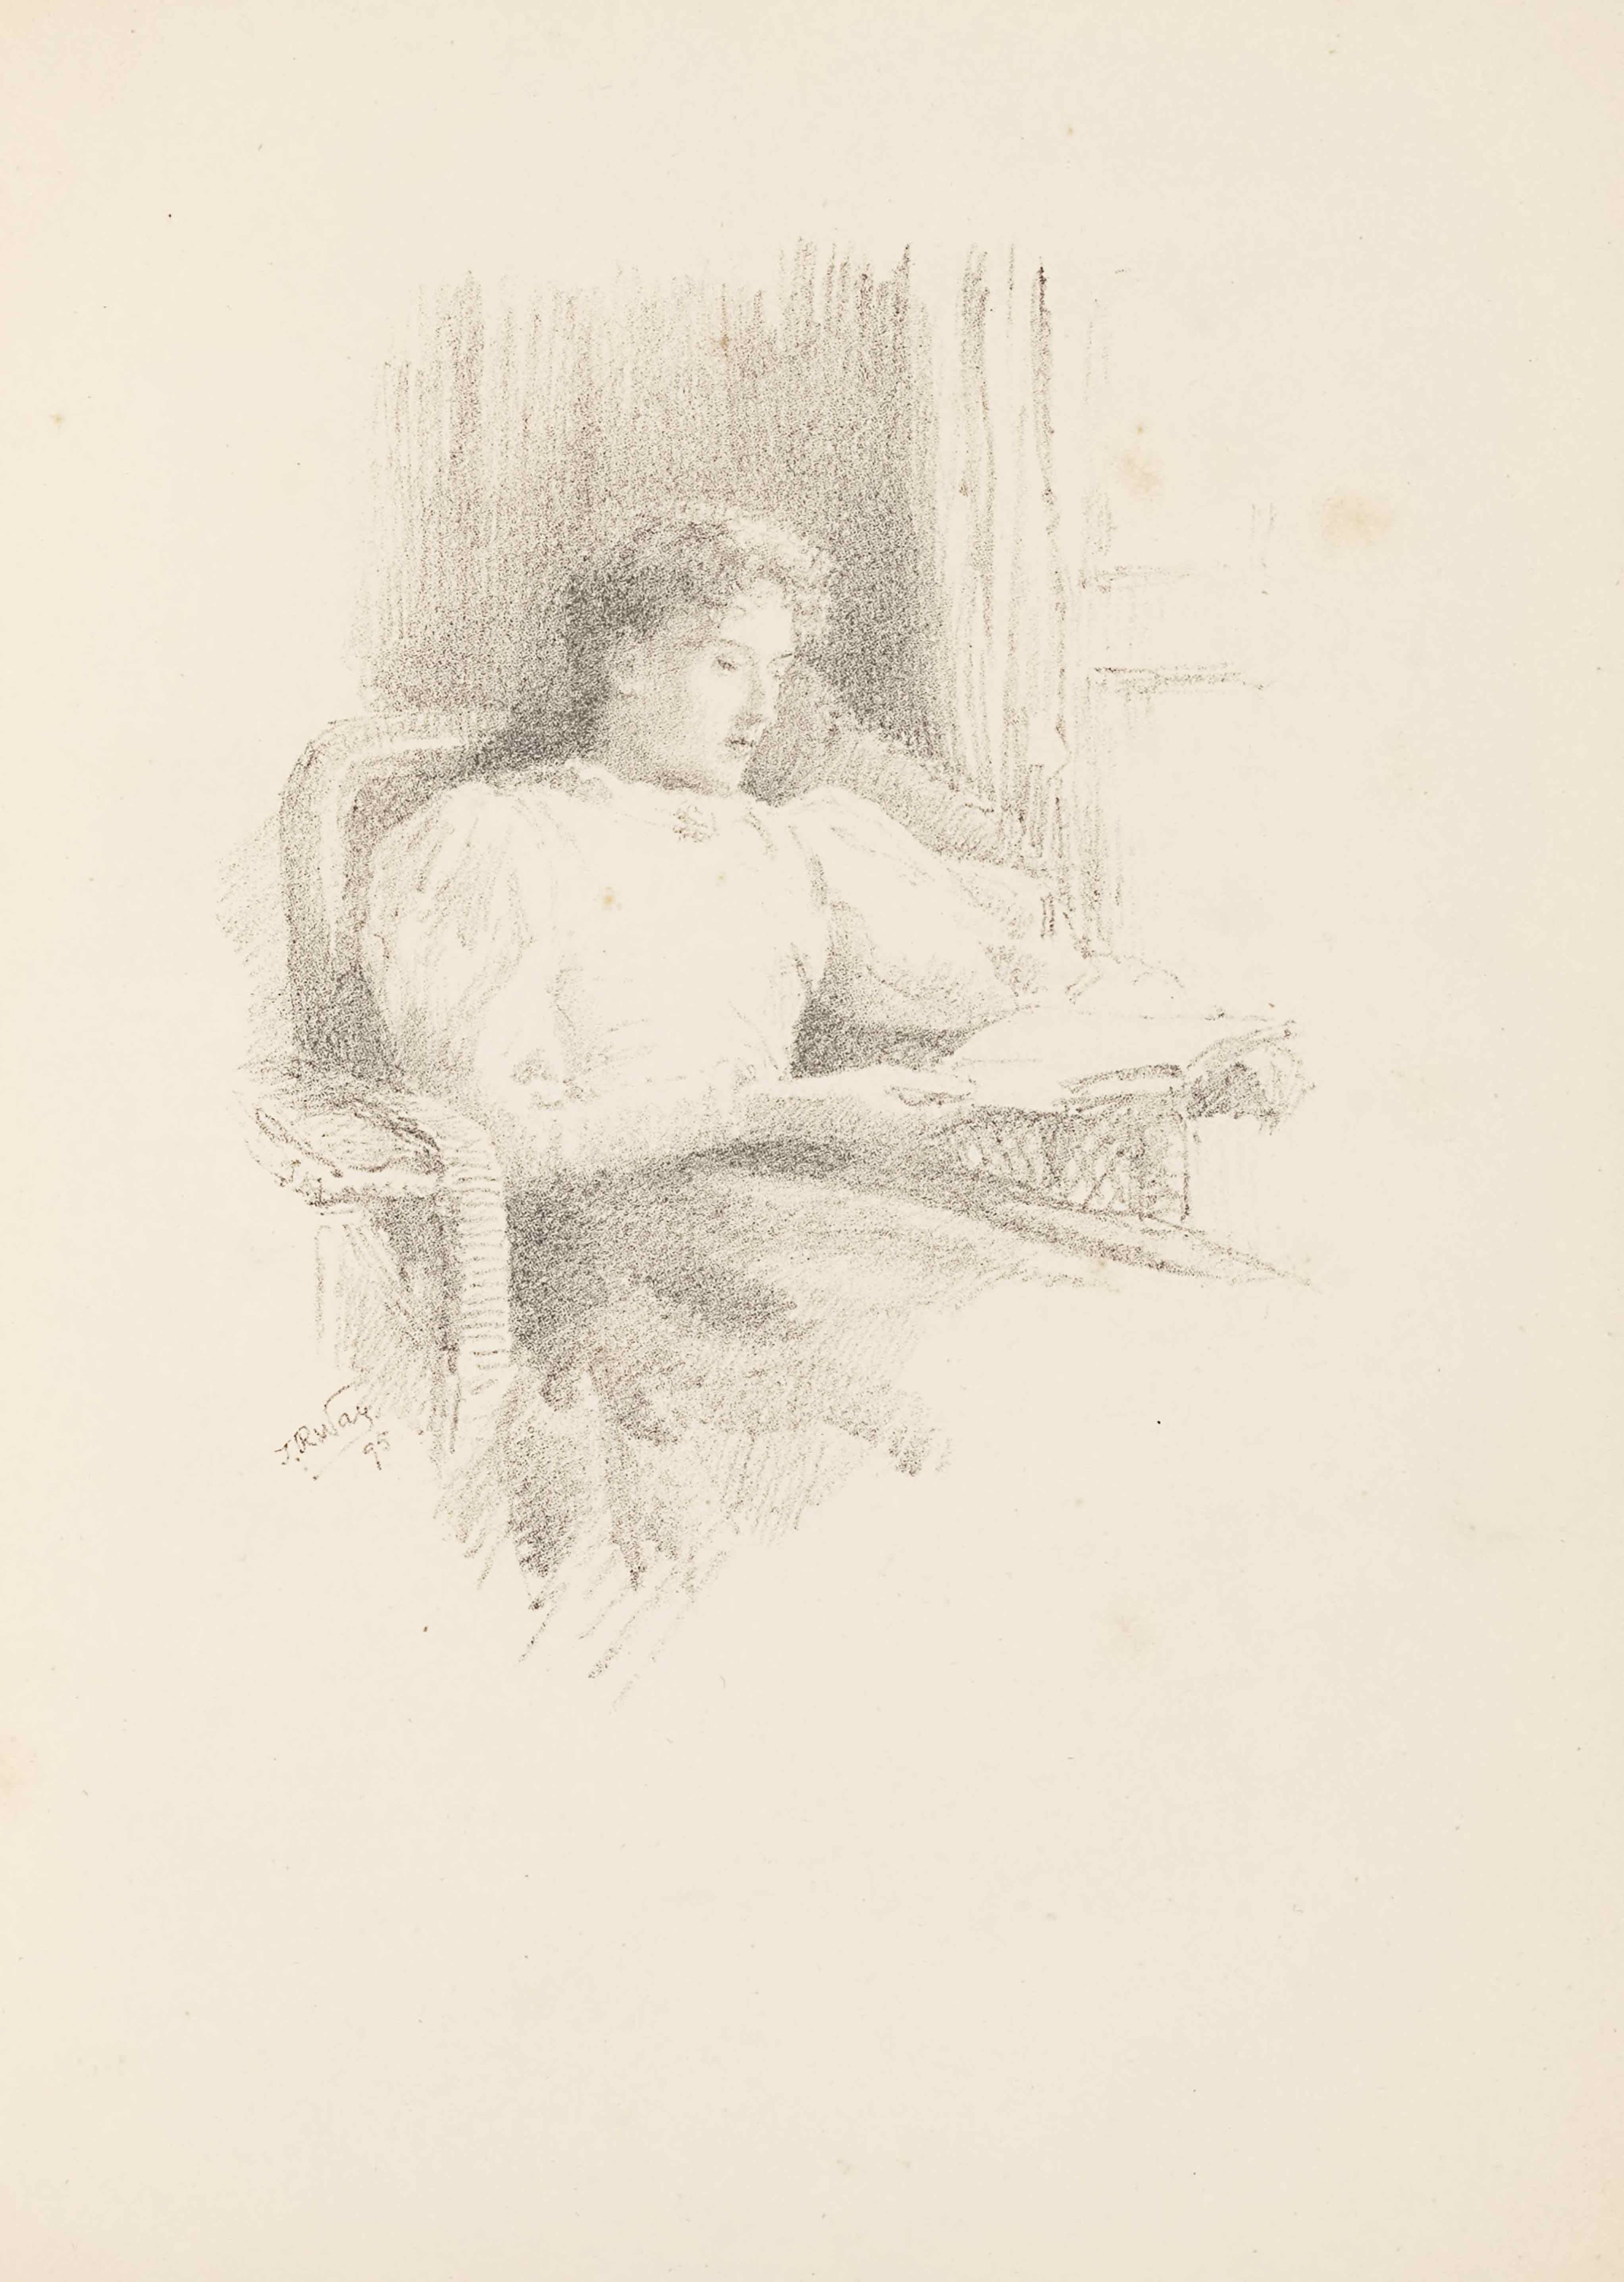 "The unbordered lithograph by T R Way is in portrait orientation. The image shows the torso of a woman sitting in a wicker chair reading a book. The image is sketched lightly and the woman's legs and surrounding area are not visible. The woman is turned to face slightly to the right, where there is the suggestion of a window. The woman's body is leaned back into the chair. She is wearing a dark skirt and a plain white shirt with long and puffy sleeves that tighten around the forearm. The shirt has a high neckline. Her face is tilted down to look at the book which rests upon the left chair arm. Her right arm reaches across her body to support the book and her left arm is extended out below the book holding that side of it up. Her hair is wavy and tied back at the nape of her neck. Her eyes are hardly visible because her eyelids are mostly closed. Behind where she sits in the chair is a section of black shading to indicate a wall in the room. There are light outlines of a paned window in the background and top right of the page. The artist's signature appears just to the left of the chair seat: ""T. R. Way."" and in the below is the date: ""95."""